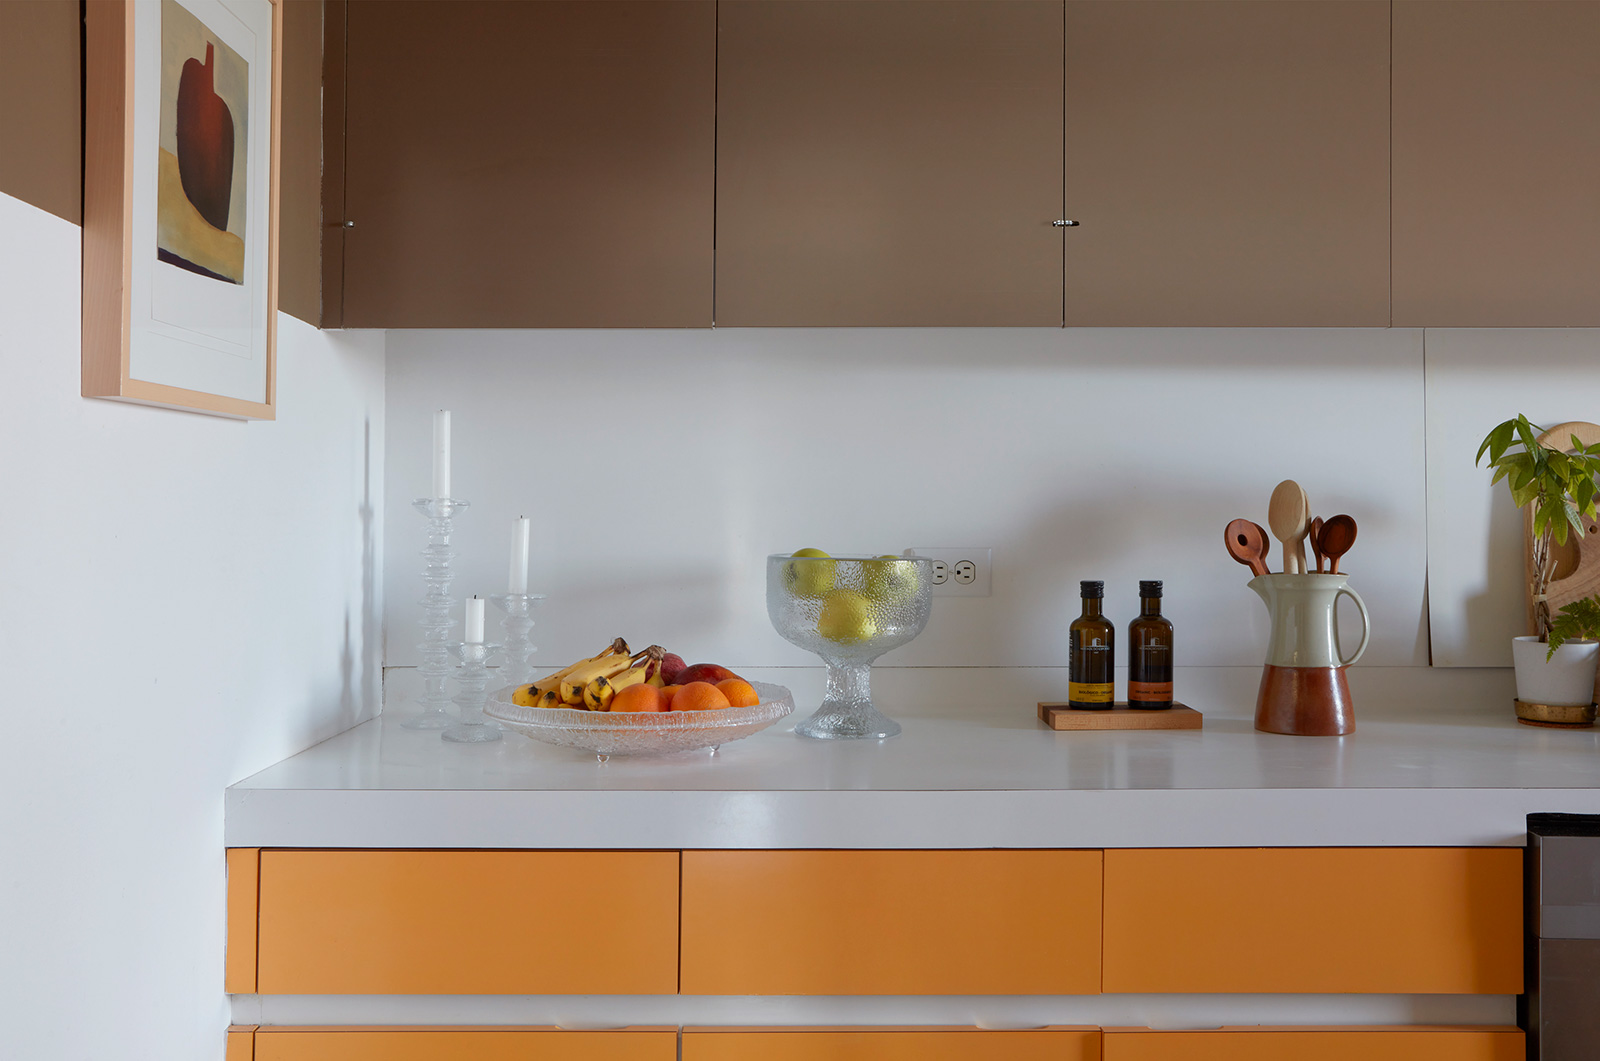 The original 1960s Formica cabinetry has stood the test of time in the kitchen.